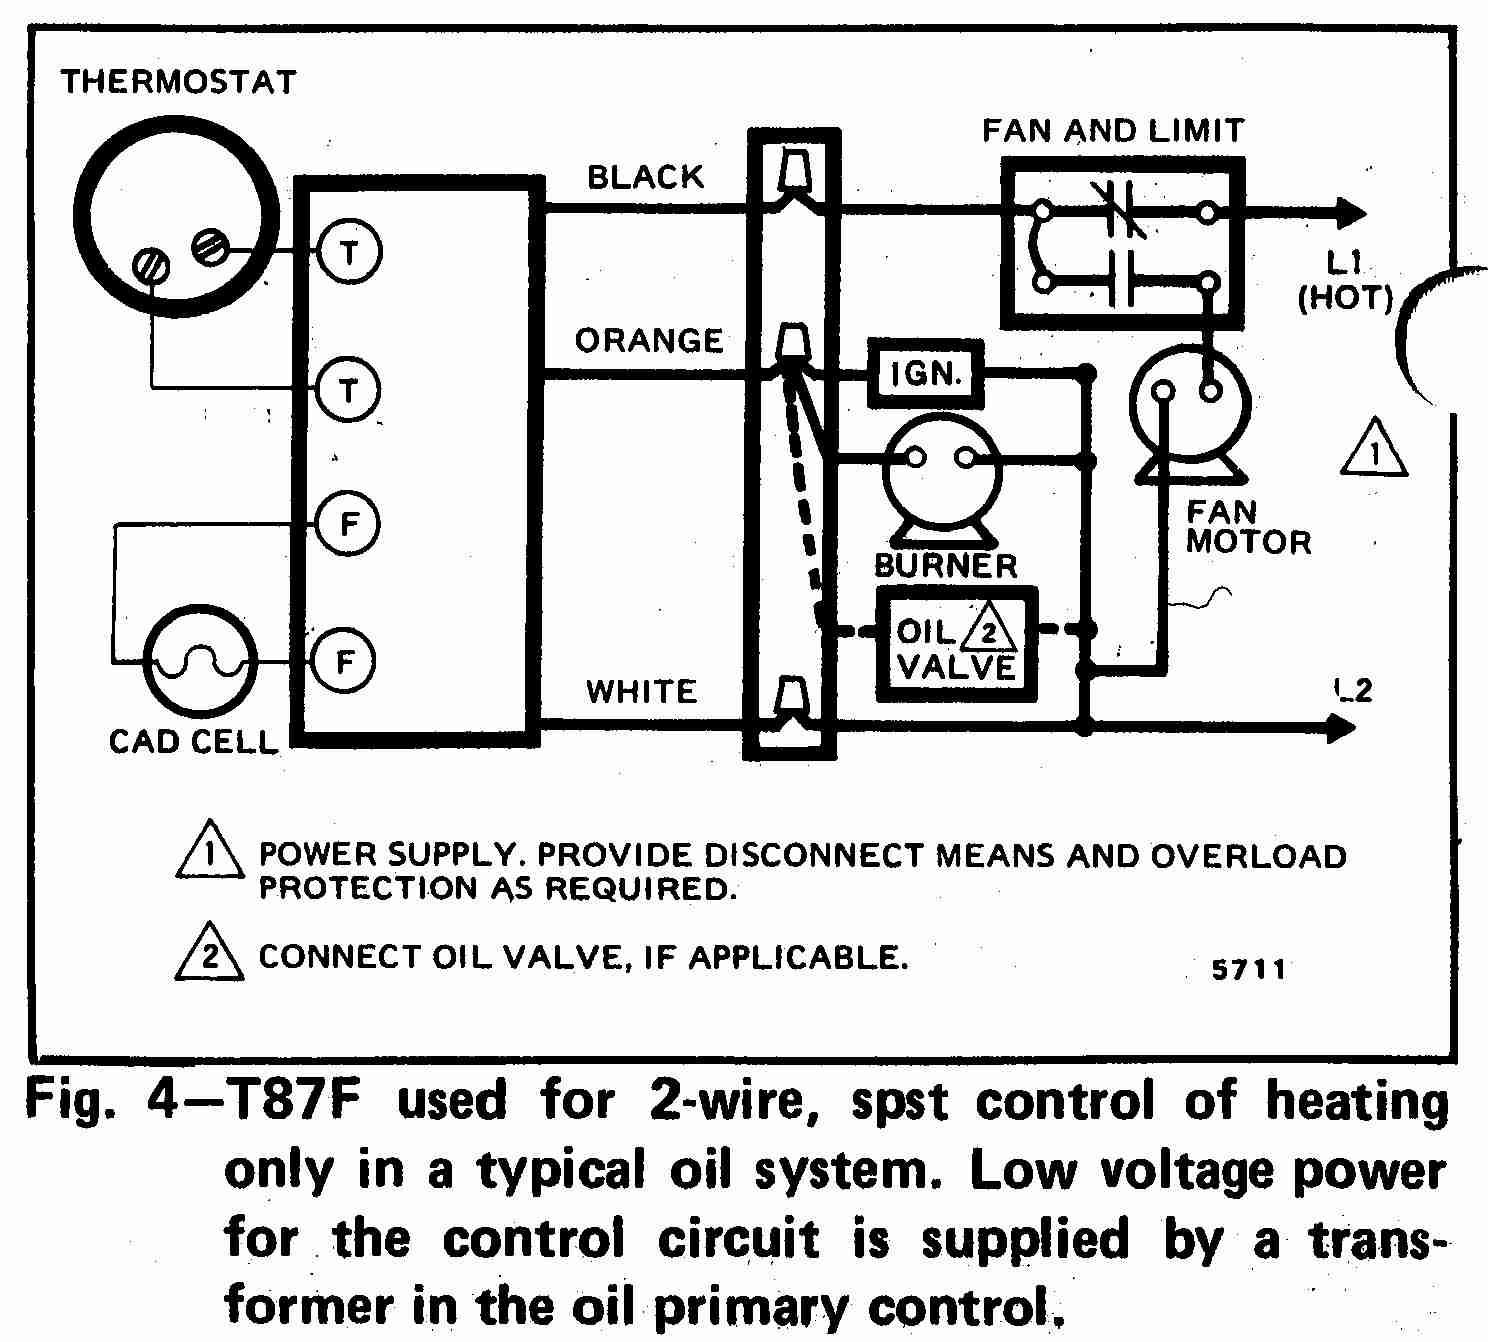 hight resolution of room thermostat wiring diagrams for hvac systems rh inspectapedia com 2 stage heat pump thermostat wiring coleman heat pump wiring diagram